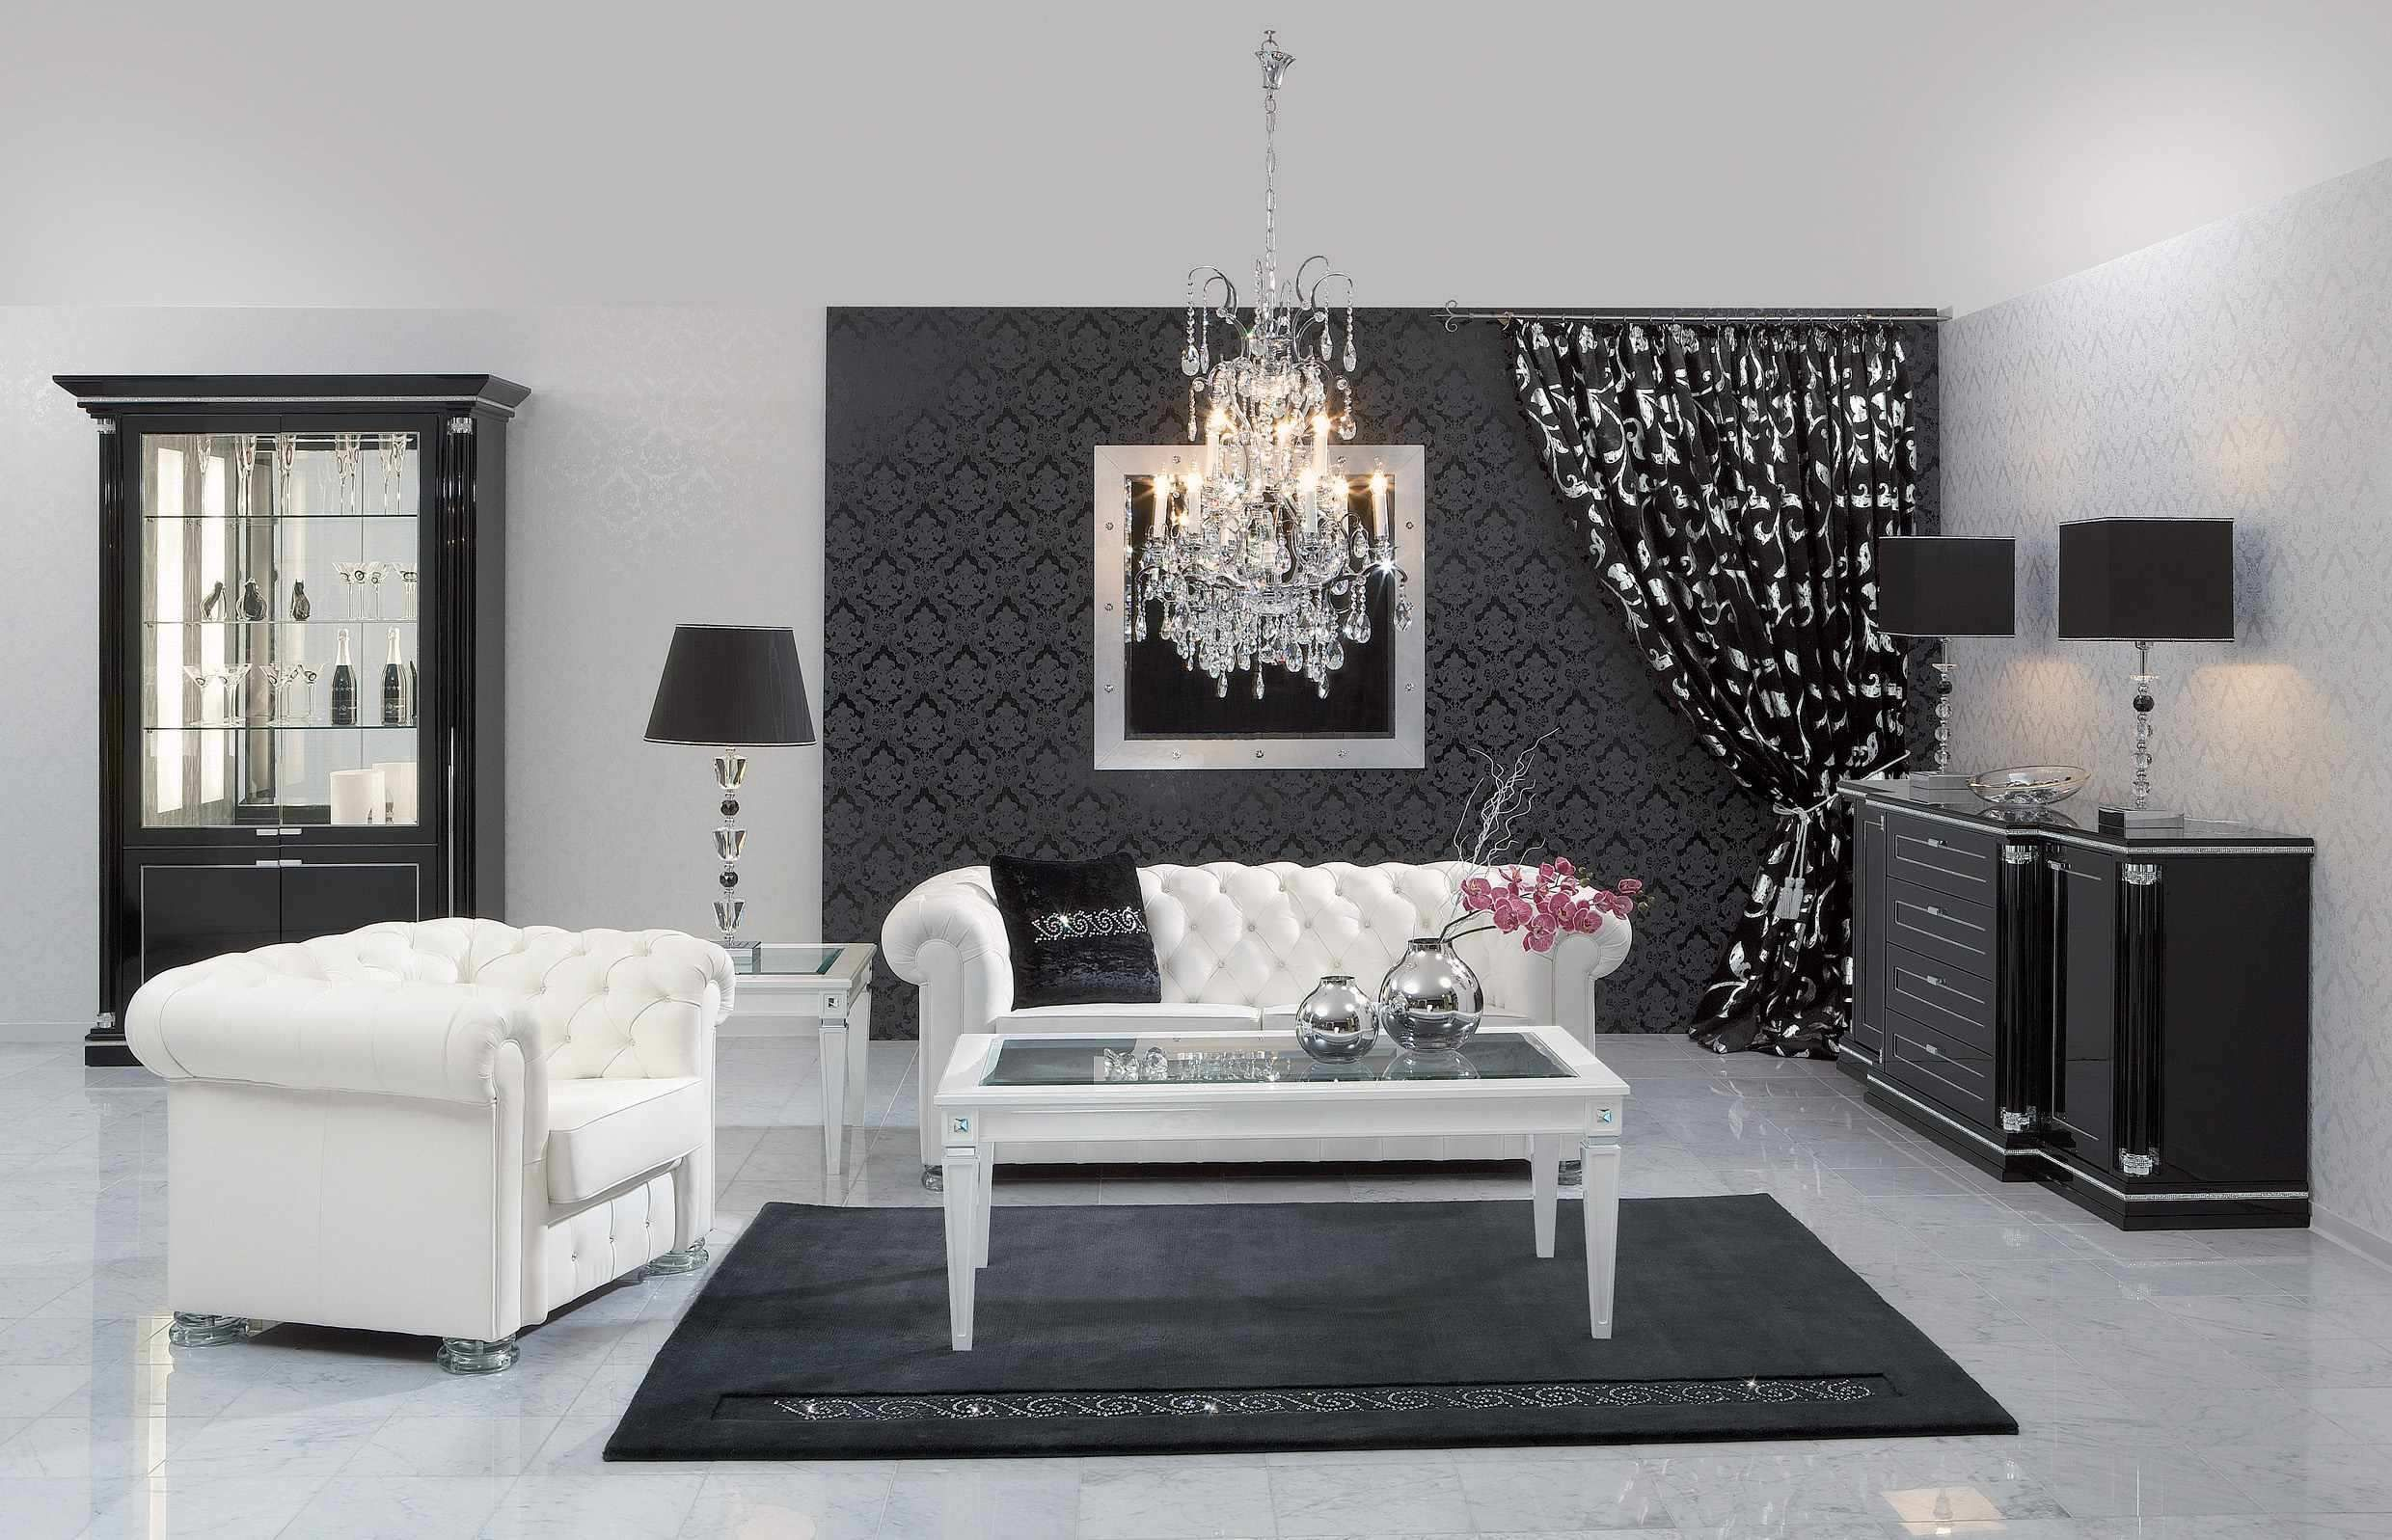 5 Outdated Home Decor Trends That Are Coming Again In 2020